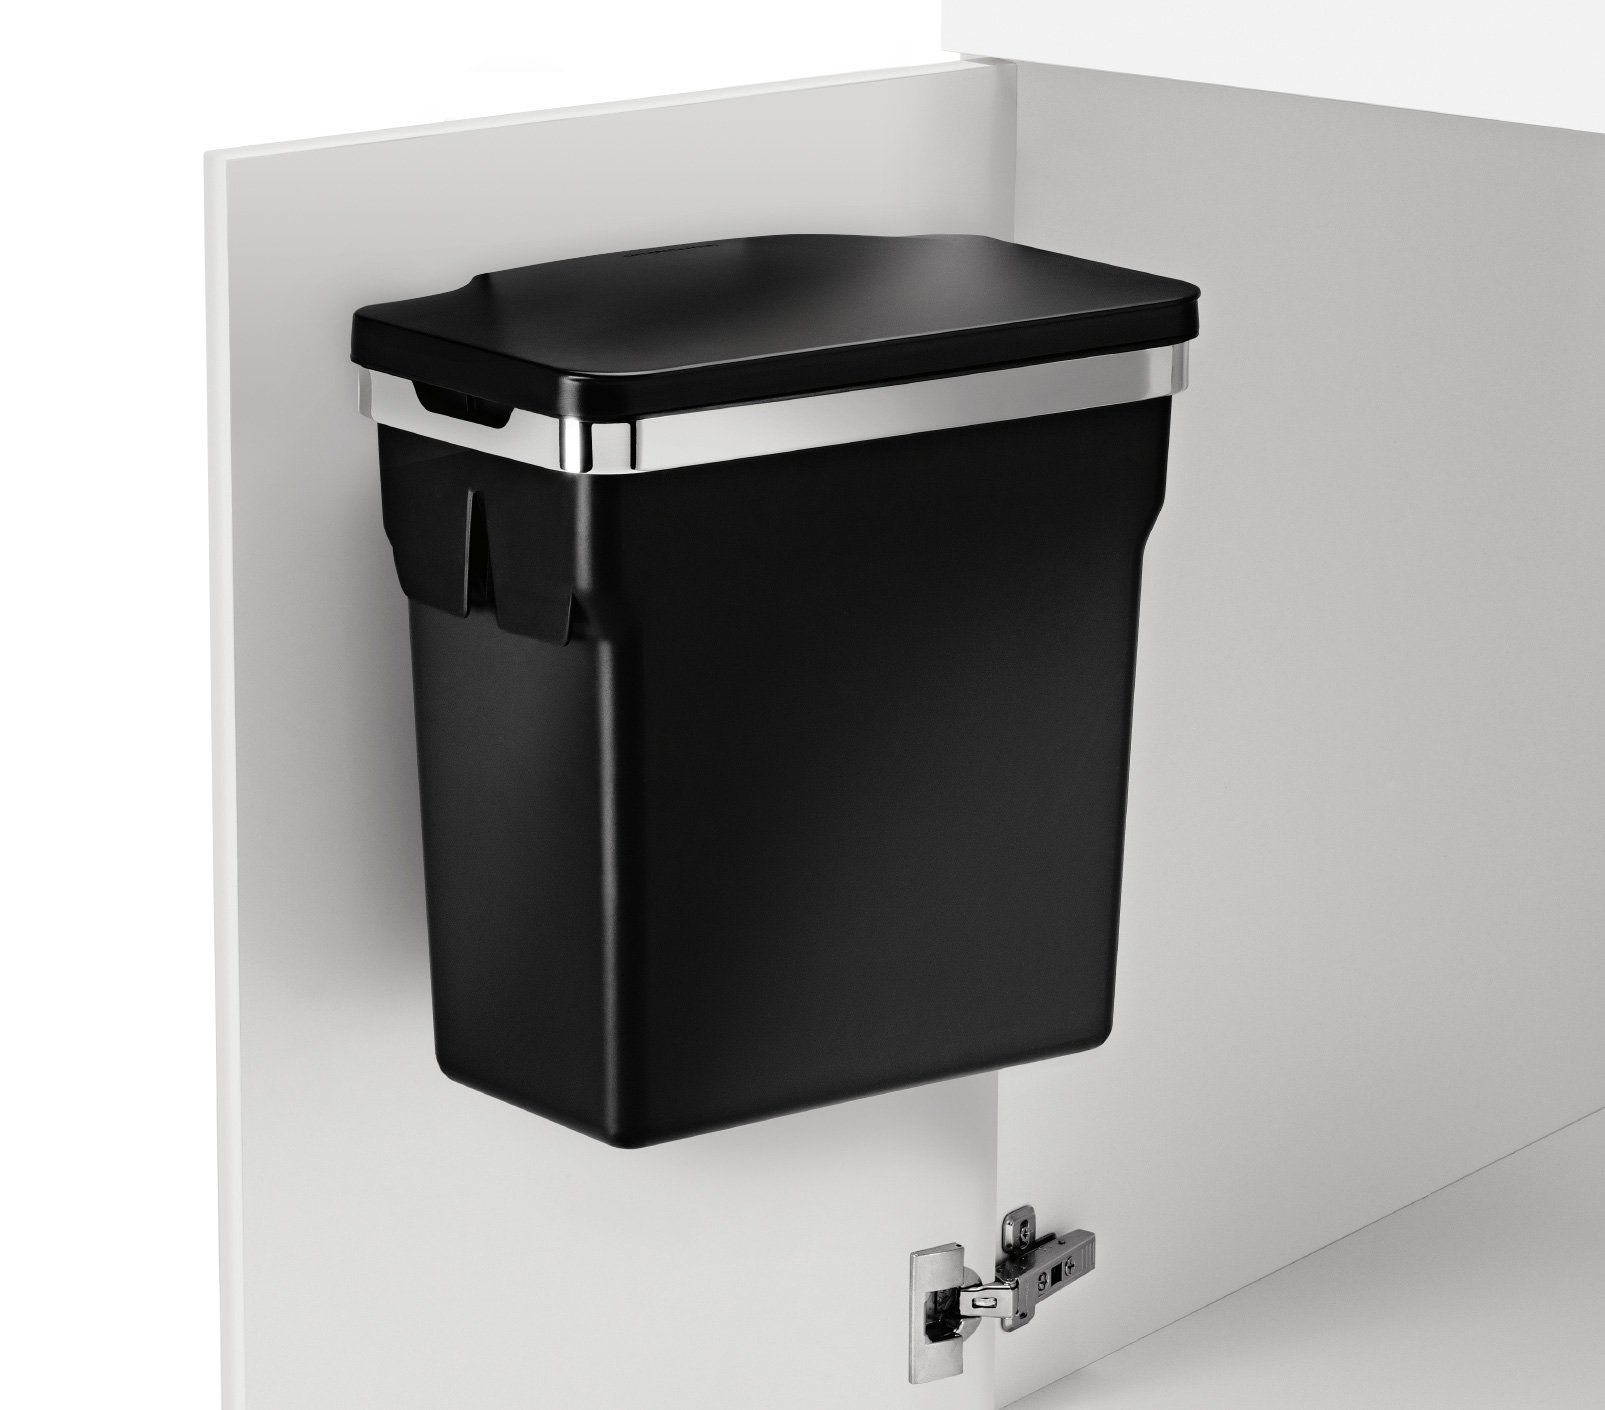 Superior Amazon.com   Simplehuman In Cabinet Trash Can, Heavy Duty Steel Frame